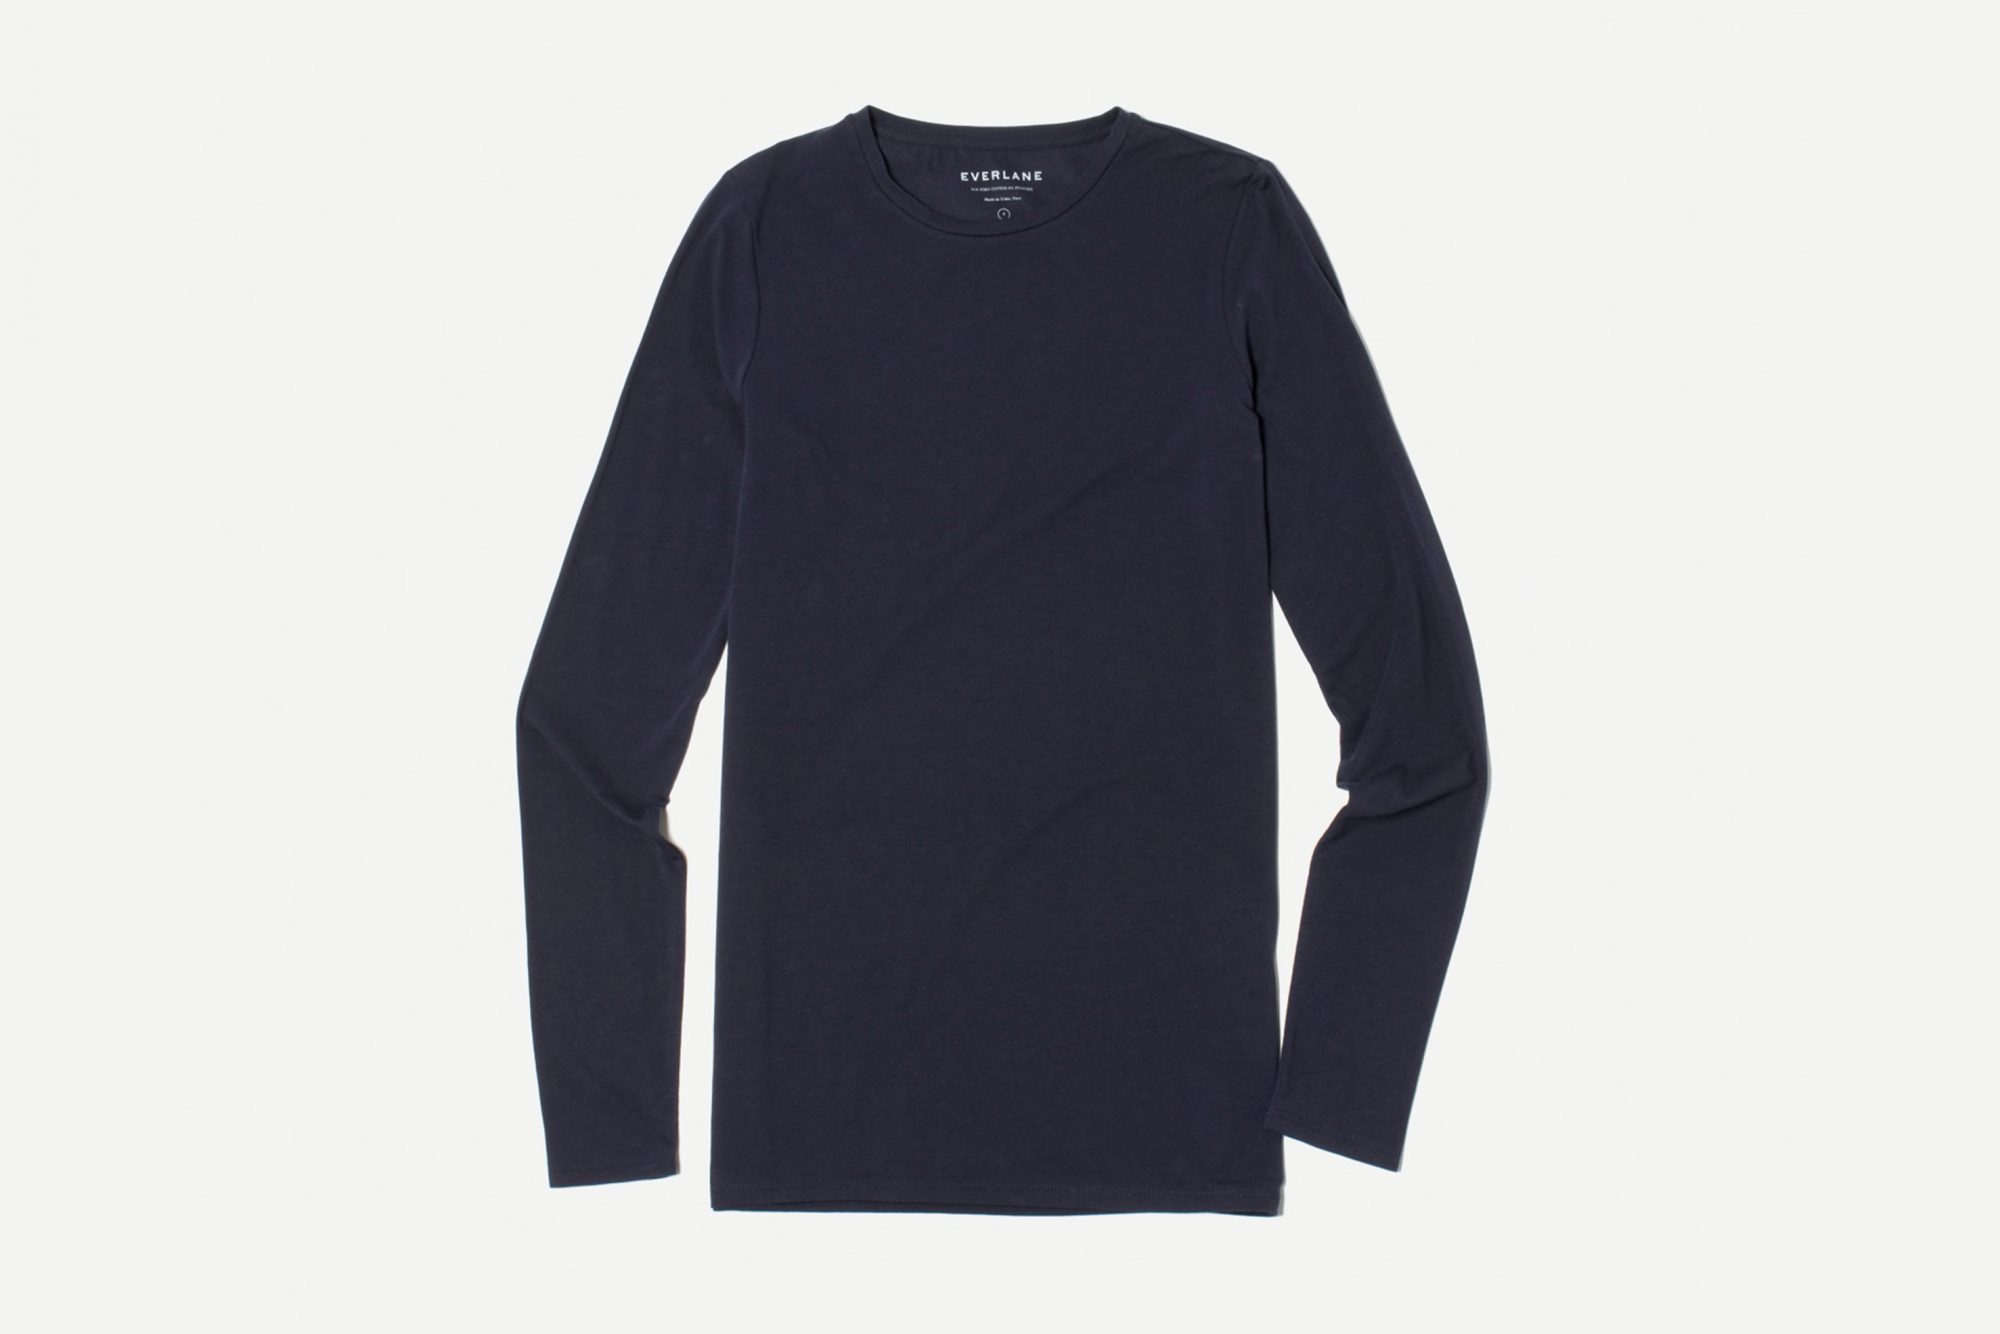 everlane choose what you pay sale prima long sleeve